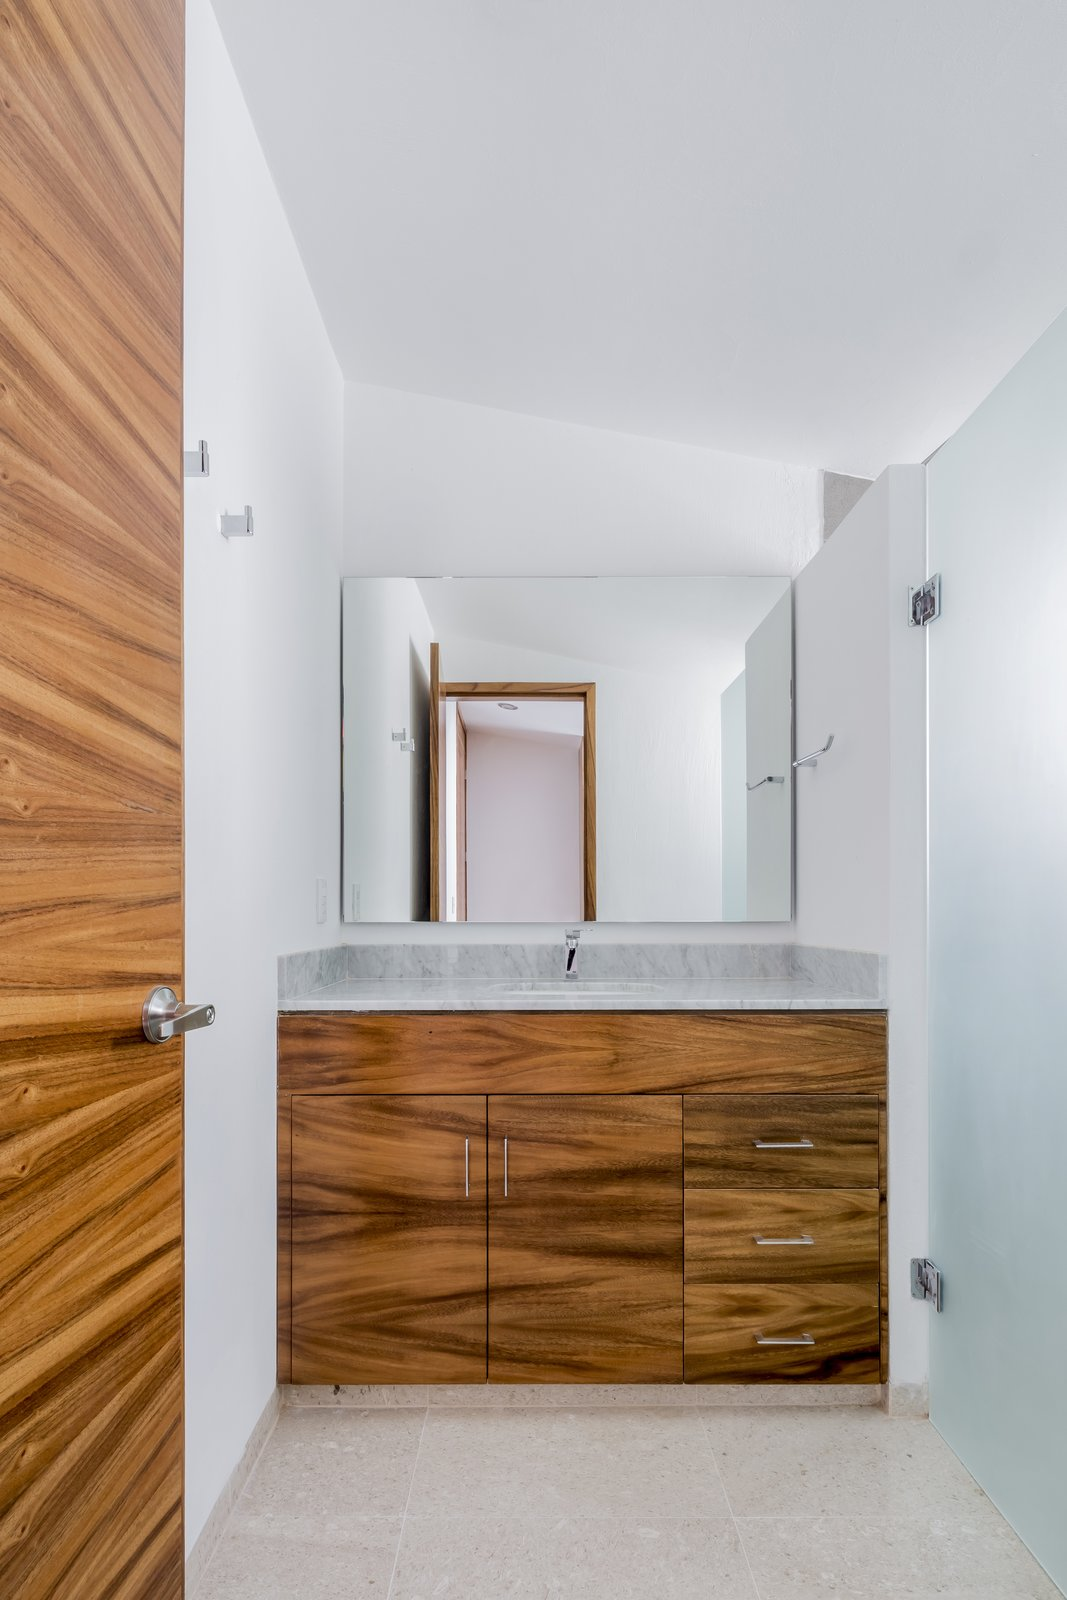 Bath Room, Marble Floor, Marble Counter, and Ceiling Lighting  CASA VALLE by Sergio Villalobos